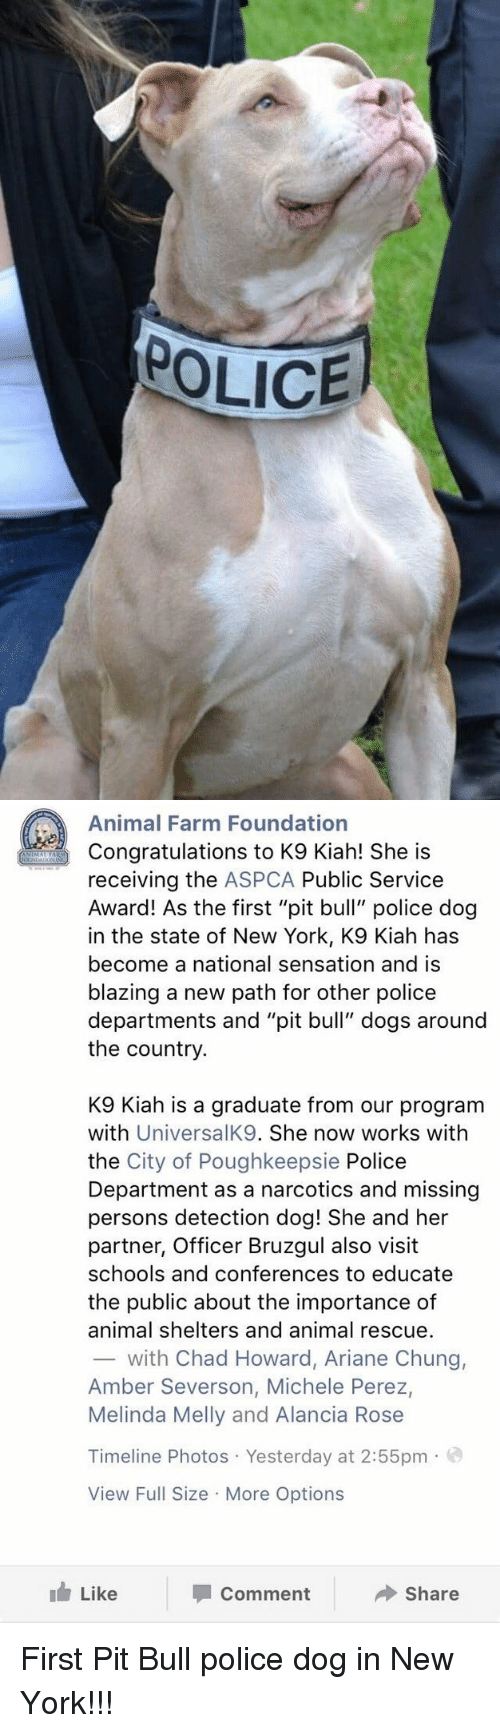 "Missing Person: POLICE   Animal Farm Foundation  Congratulations to K9 Kiah! She is  receiving the ASPCA Public Service  Award! As the first ""pit bull"" police dog  in the state of New York, K9 Kiah has  become a national sensation and is  blazing a new path for other police  departments and ""pit bull"" dogs around  the country.  K9 lah is a graduate from our program  with  UniversalK9. She now works with  the City of Poughkeepsie Police  Department as a narcotics and missing  persons detection dog! She and her  partner, Officer Bruzgul also visit  schools and conferences to educate  the public about the importance of  animal shelters and animal rescue.  with Chad Howard, Ariane Chung,  Amber Severson, Michele Perez,  Melinda Melly and Alancia Rose  Timeline Photos Yesterday at 2:55pm  o  View Full Size More Options  Like  Share  Comment First Pit Bull police dog in New York!!!"